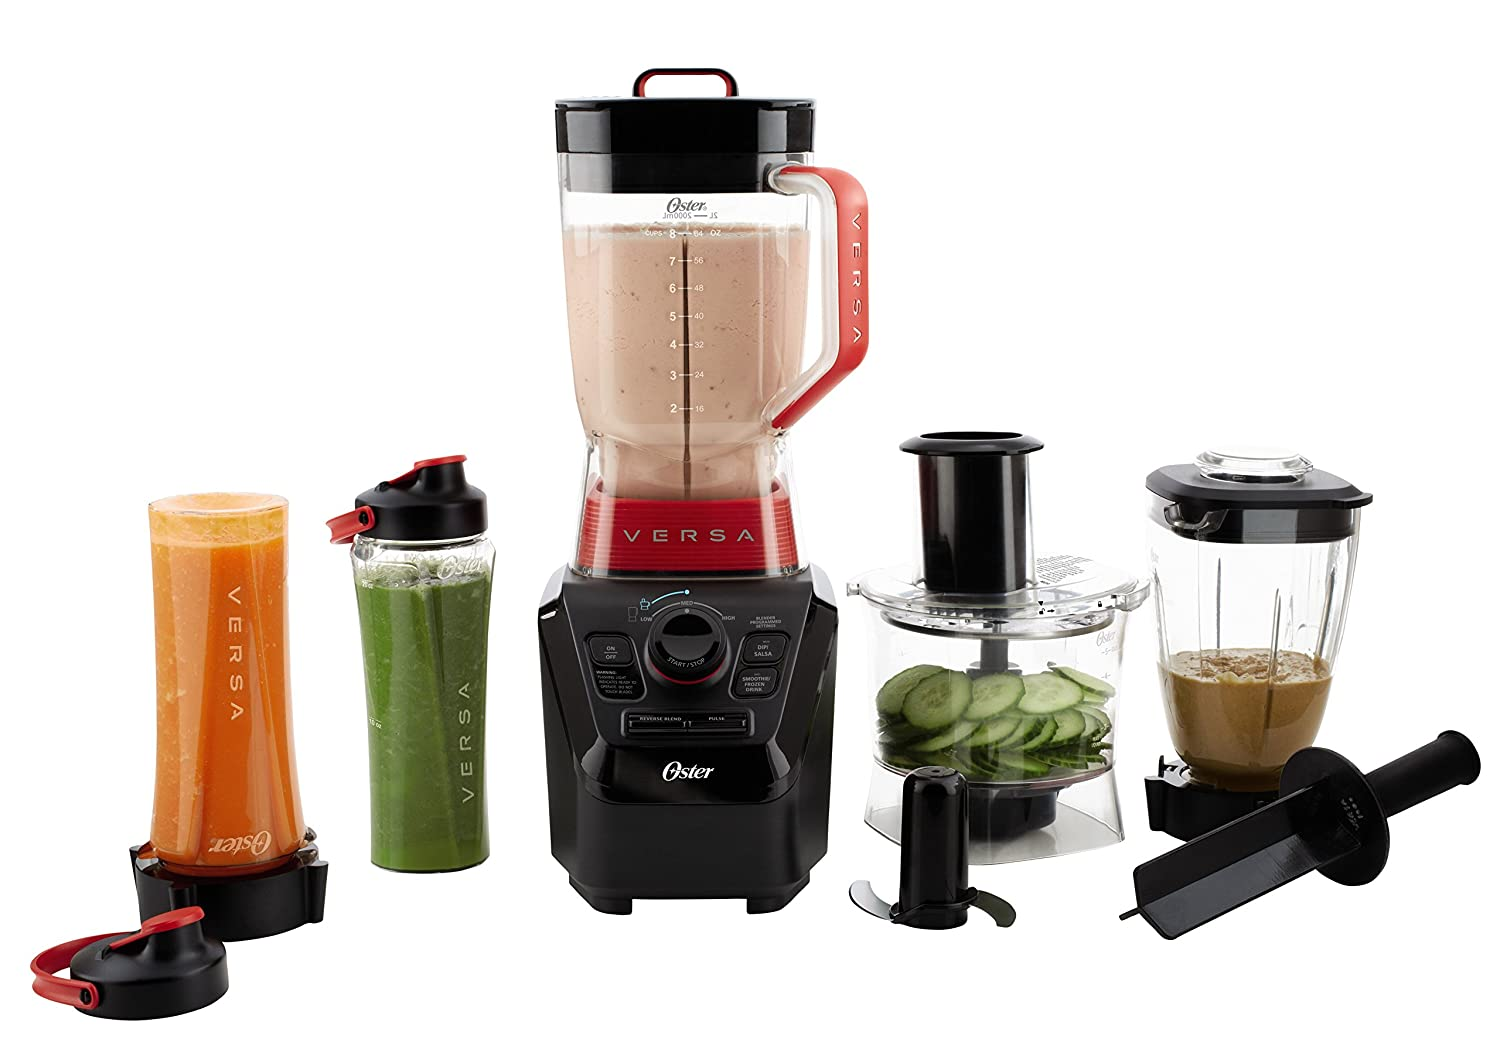 Oster Versa Pro  Blstvb 104 000  Series Blender With Food Processor Attachment, Blend N Go Smoothie Cups & 4 Cup Mini Jar by Oster